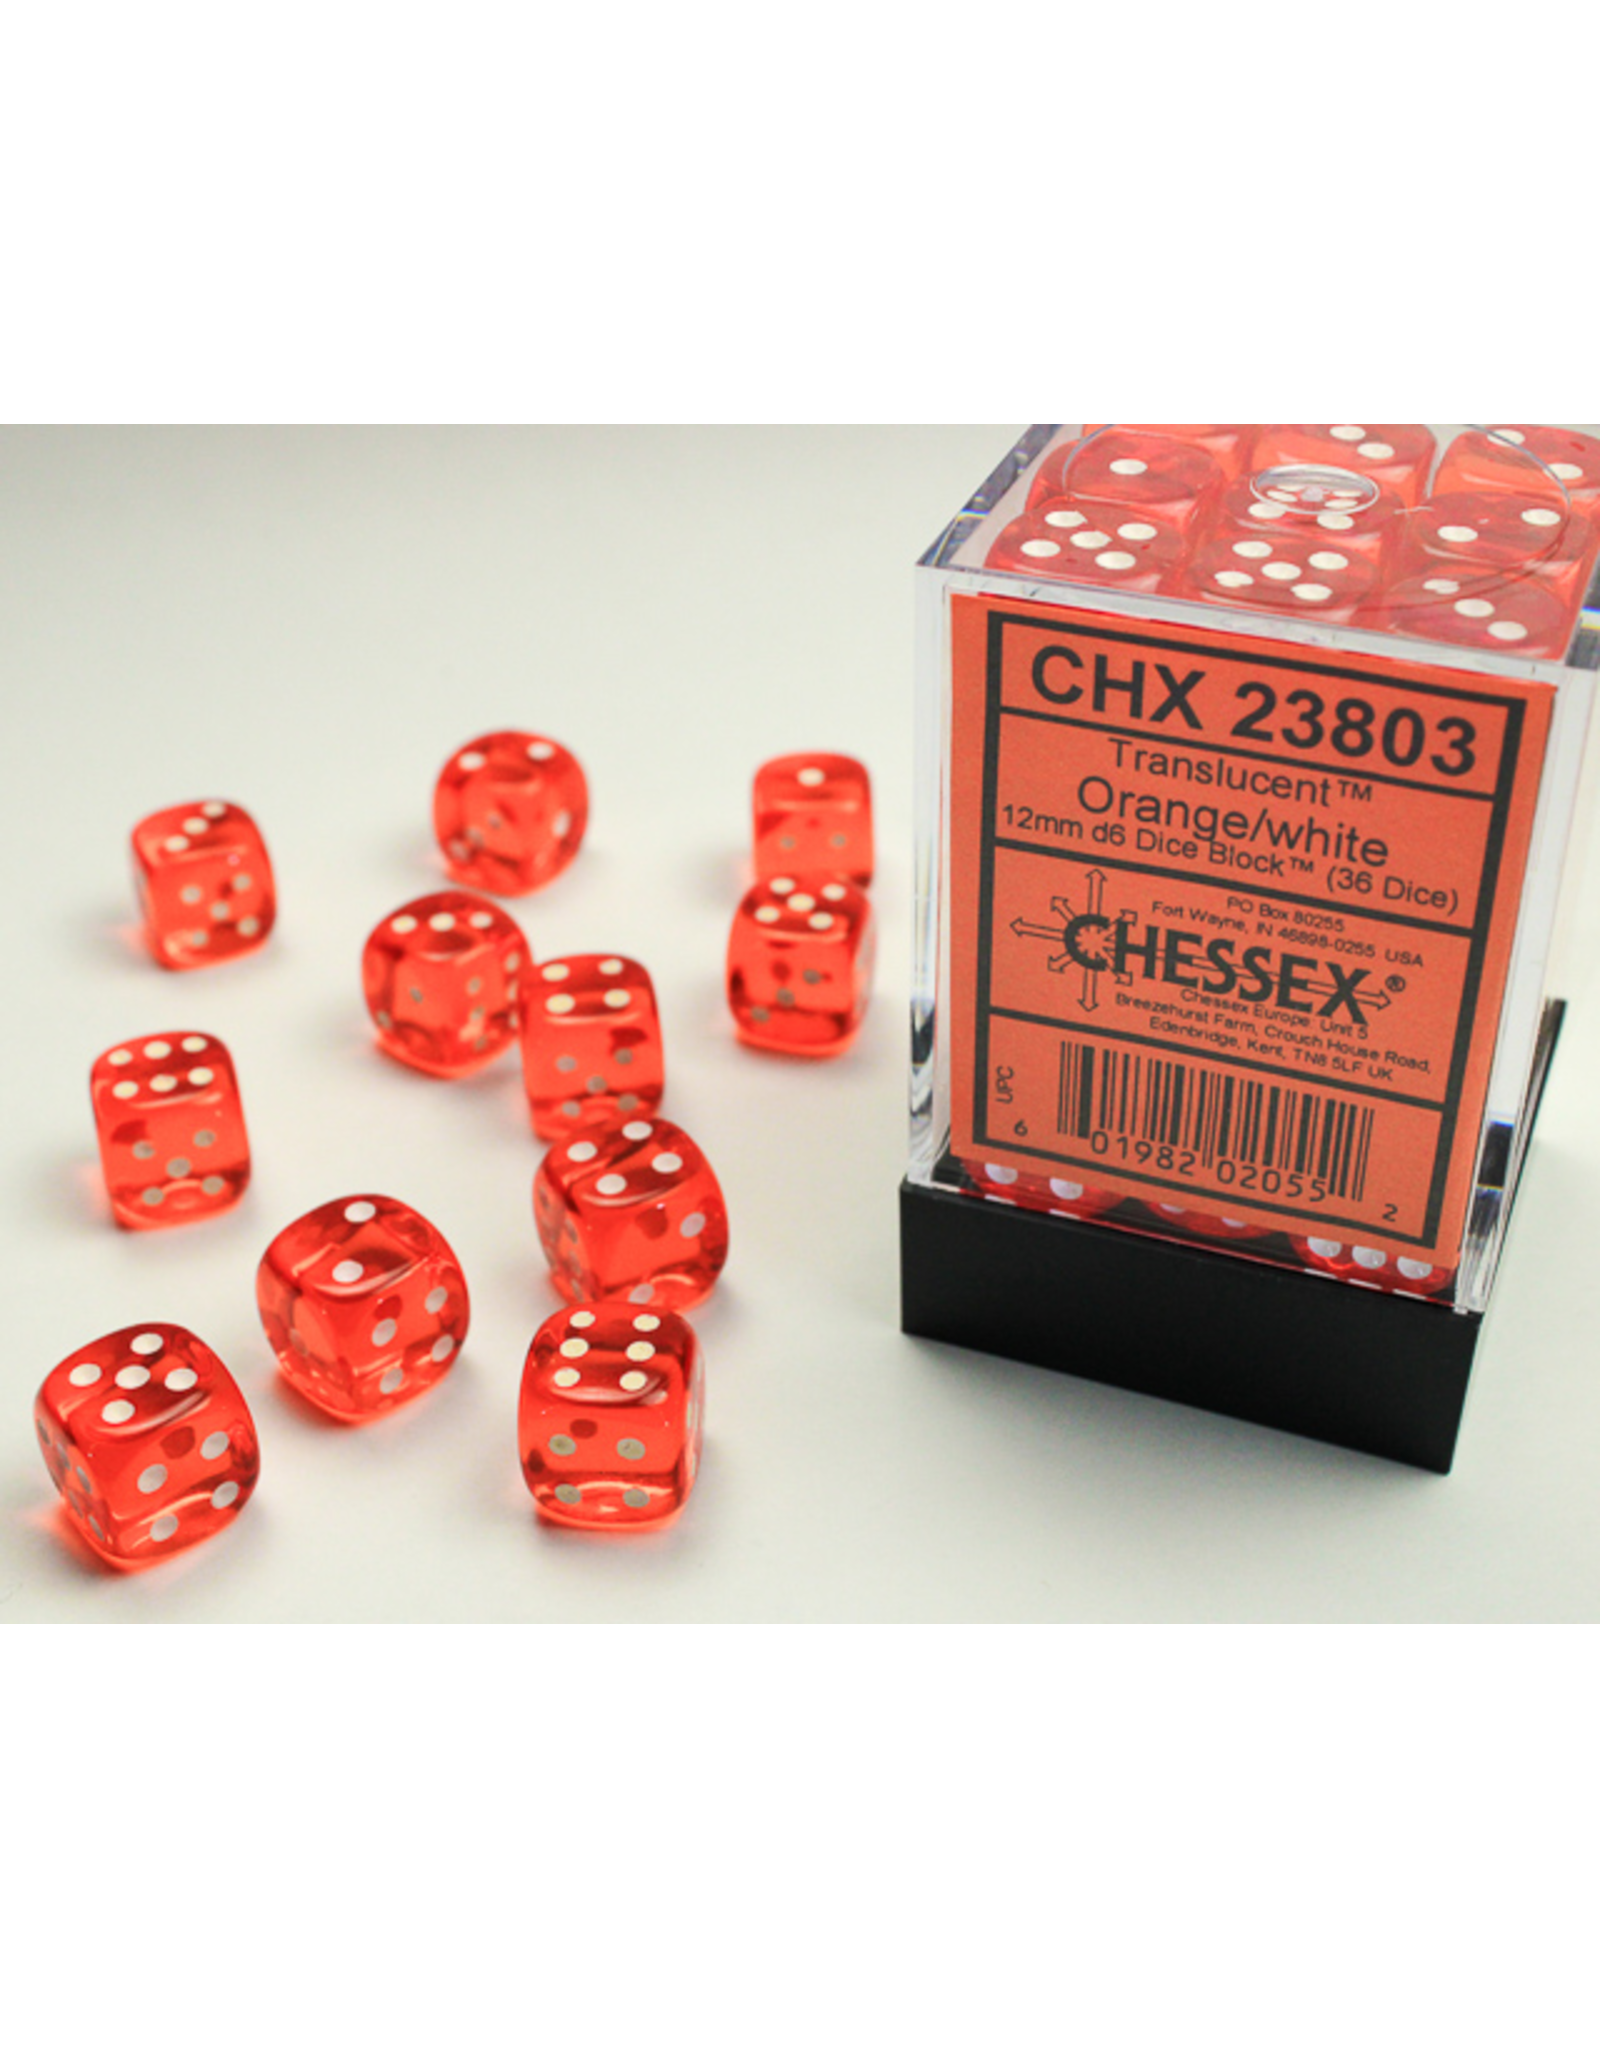 Chessex Dice: D6 Cube 12mm Translucent Orange with White Pips (CHX)